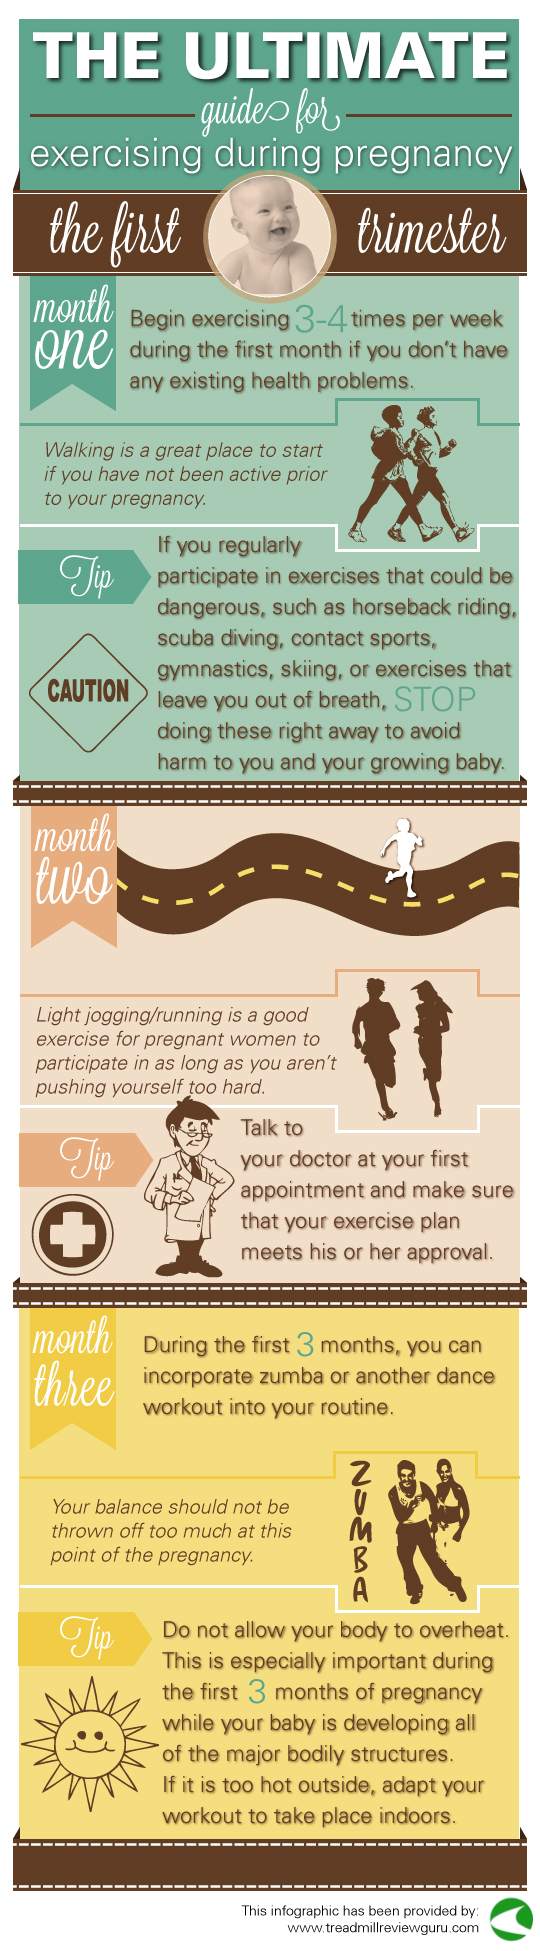 Safe Exercises for Your Pregnancy's First Trimester - Infographic